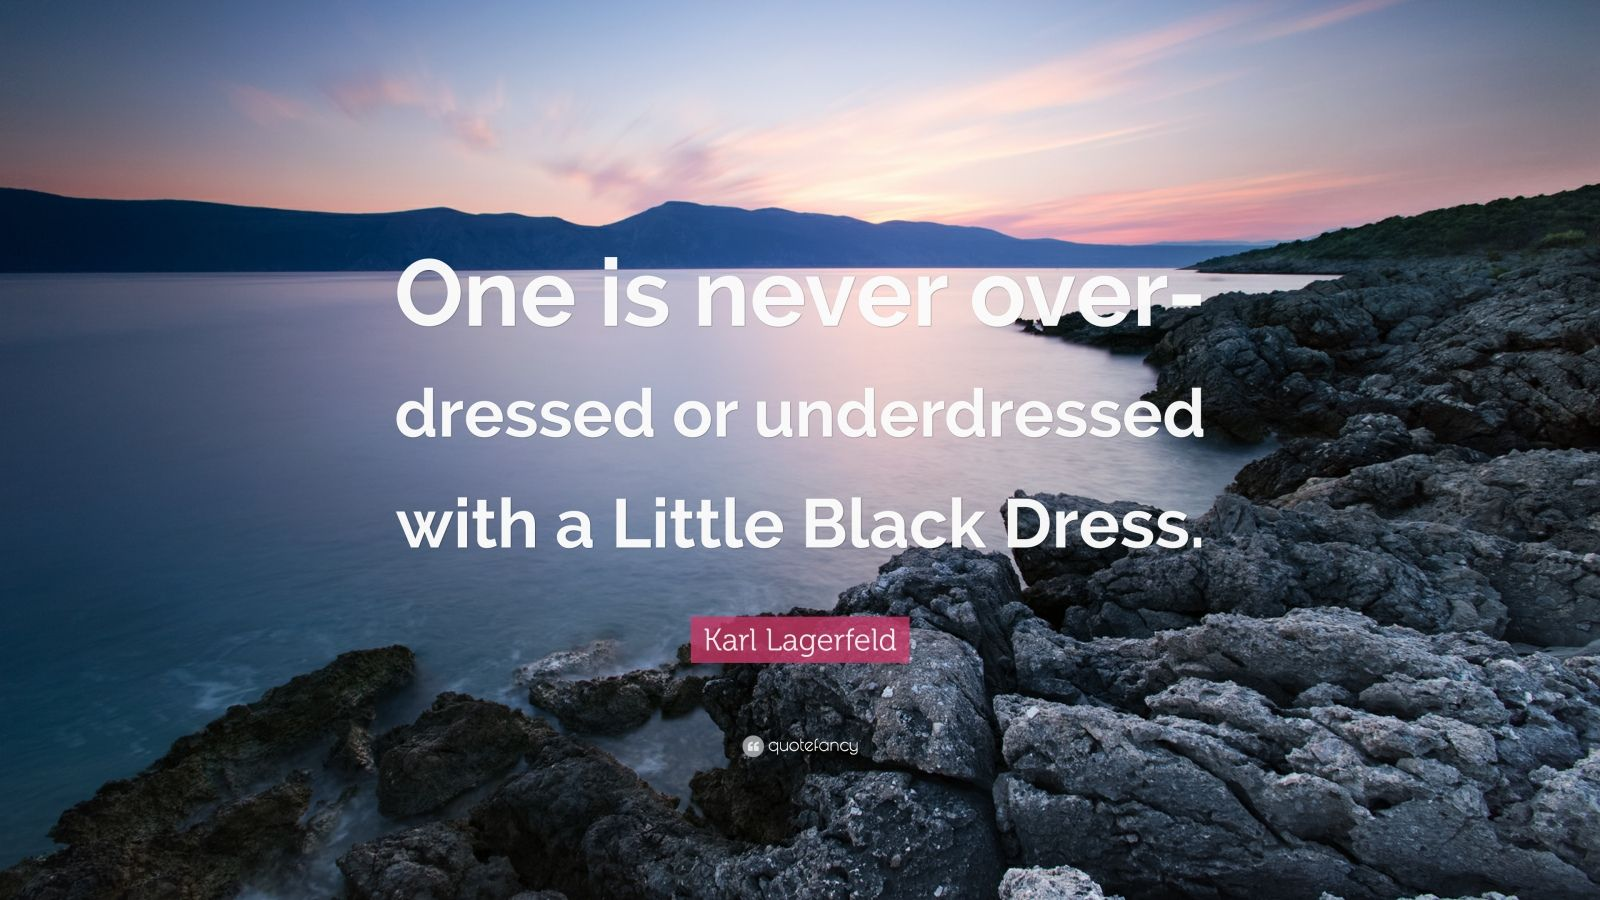 "Karl Lagerfeld Quote: ""One is never over-dressed or underdressed with a Little Black Dress."""